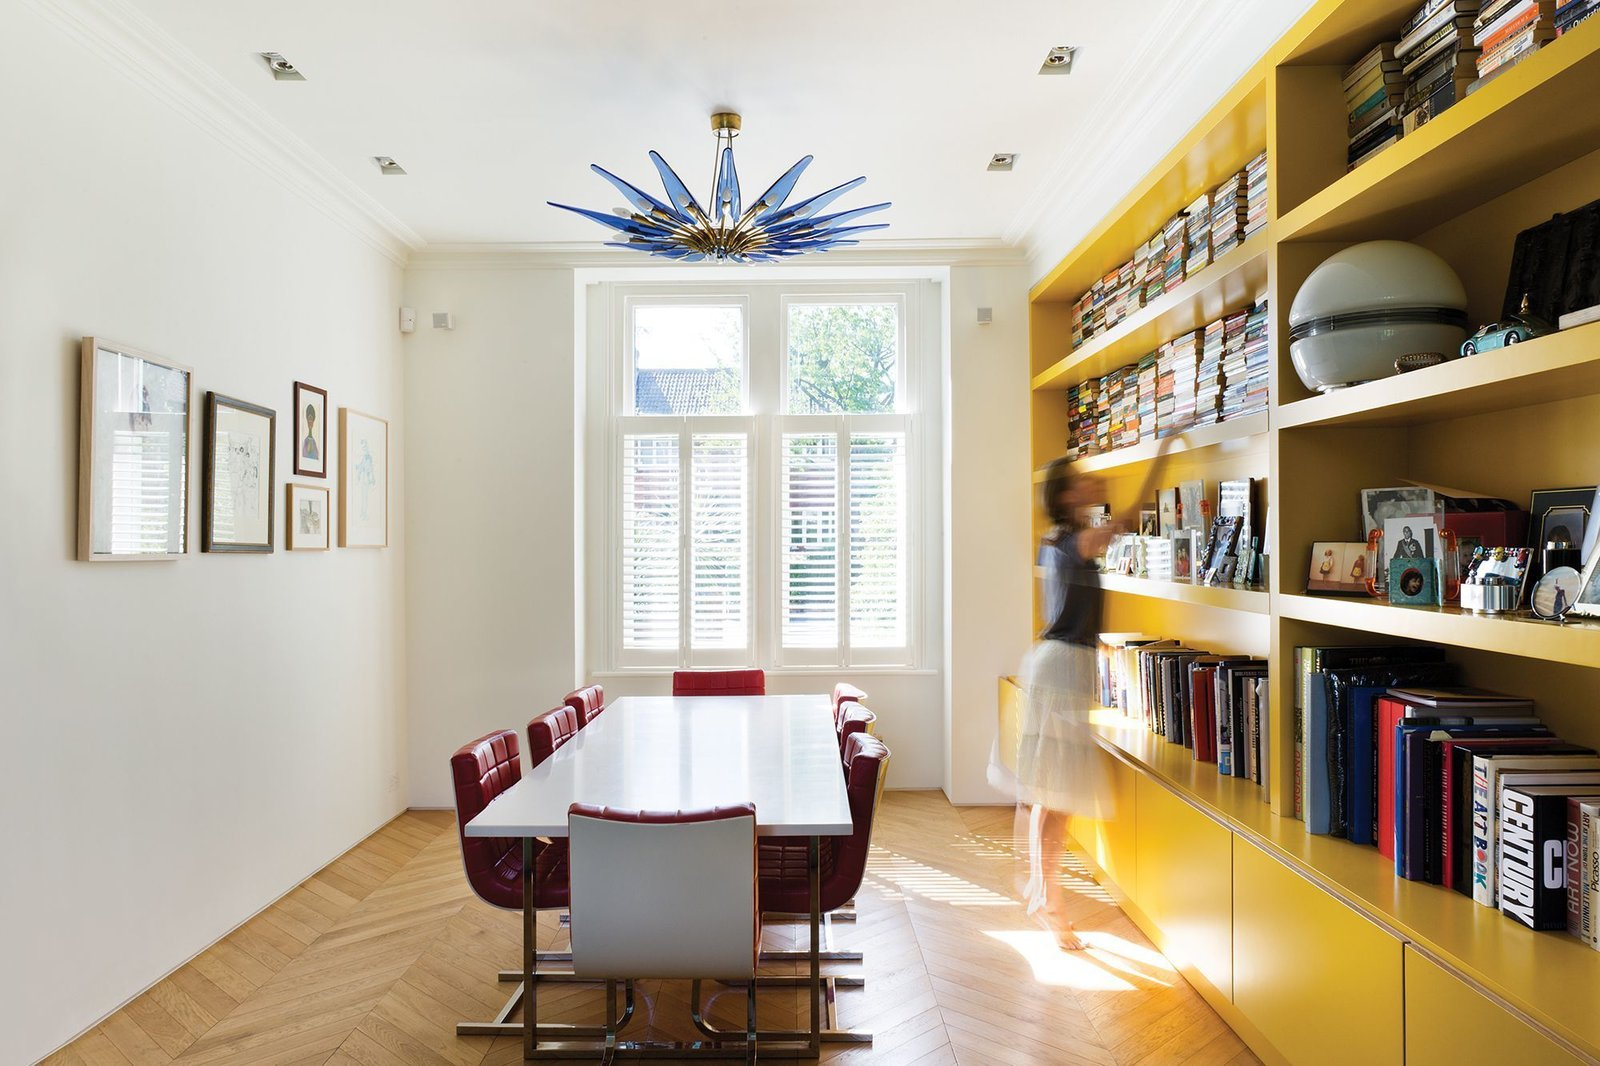 Storage, Sofa, Dining Room, Shelves, and Light Hardwood Floor  Photo 4 of 13 in Bright Bauhaus Colors Fill This Brick Edwardian House in London